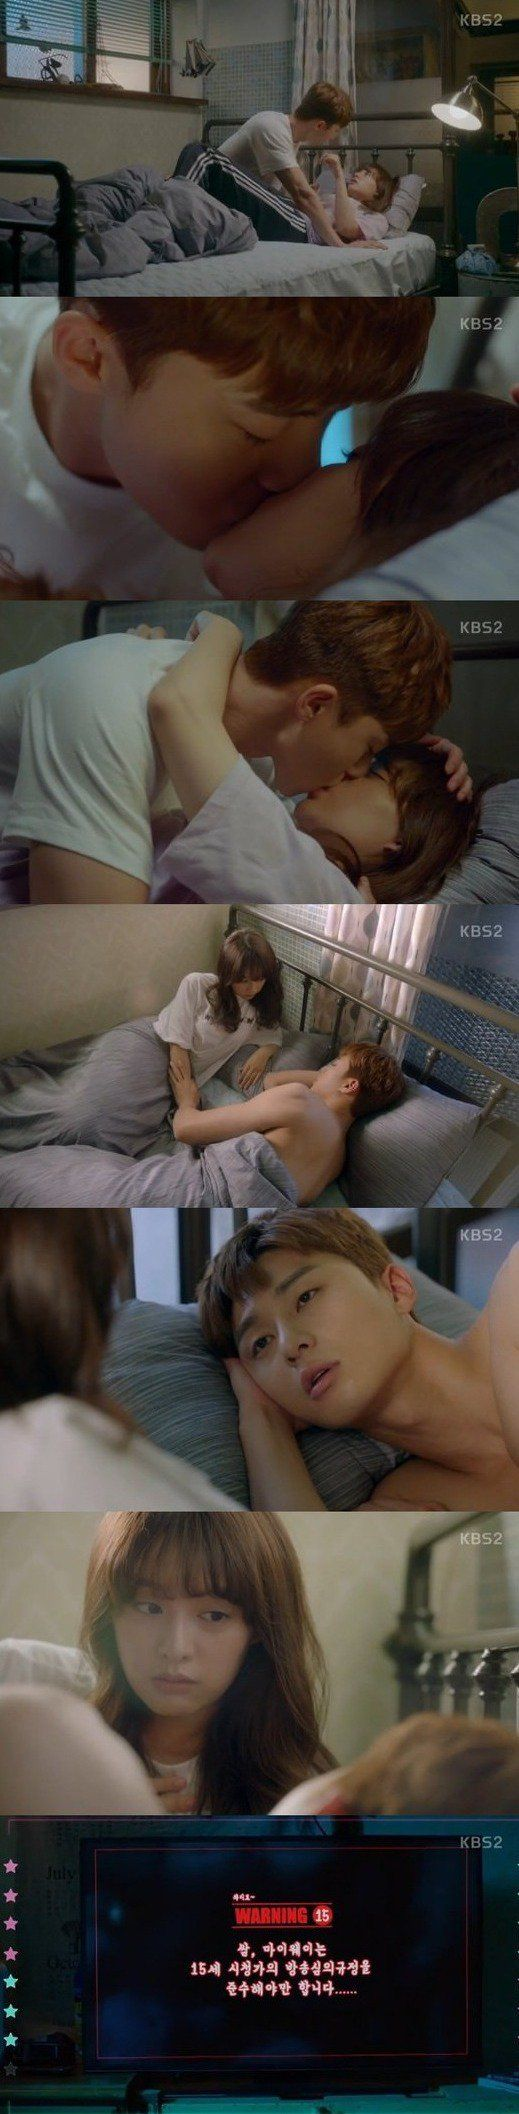 Added episode 14 captures for the Korean drama 'Fight My Way'.